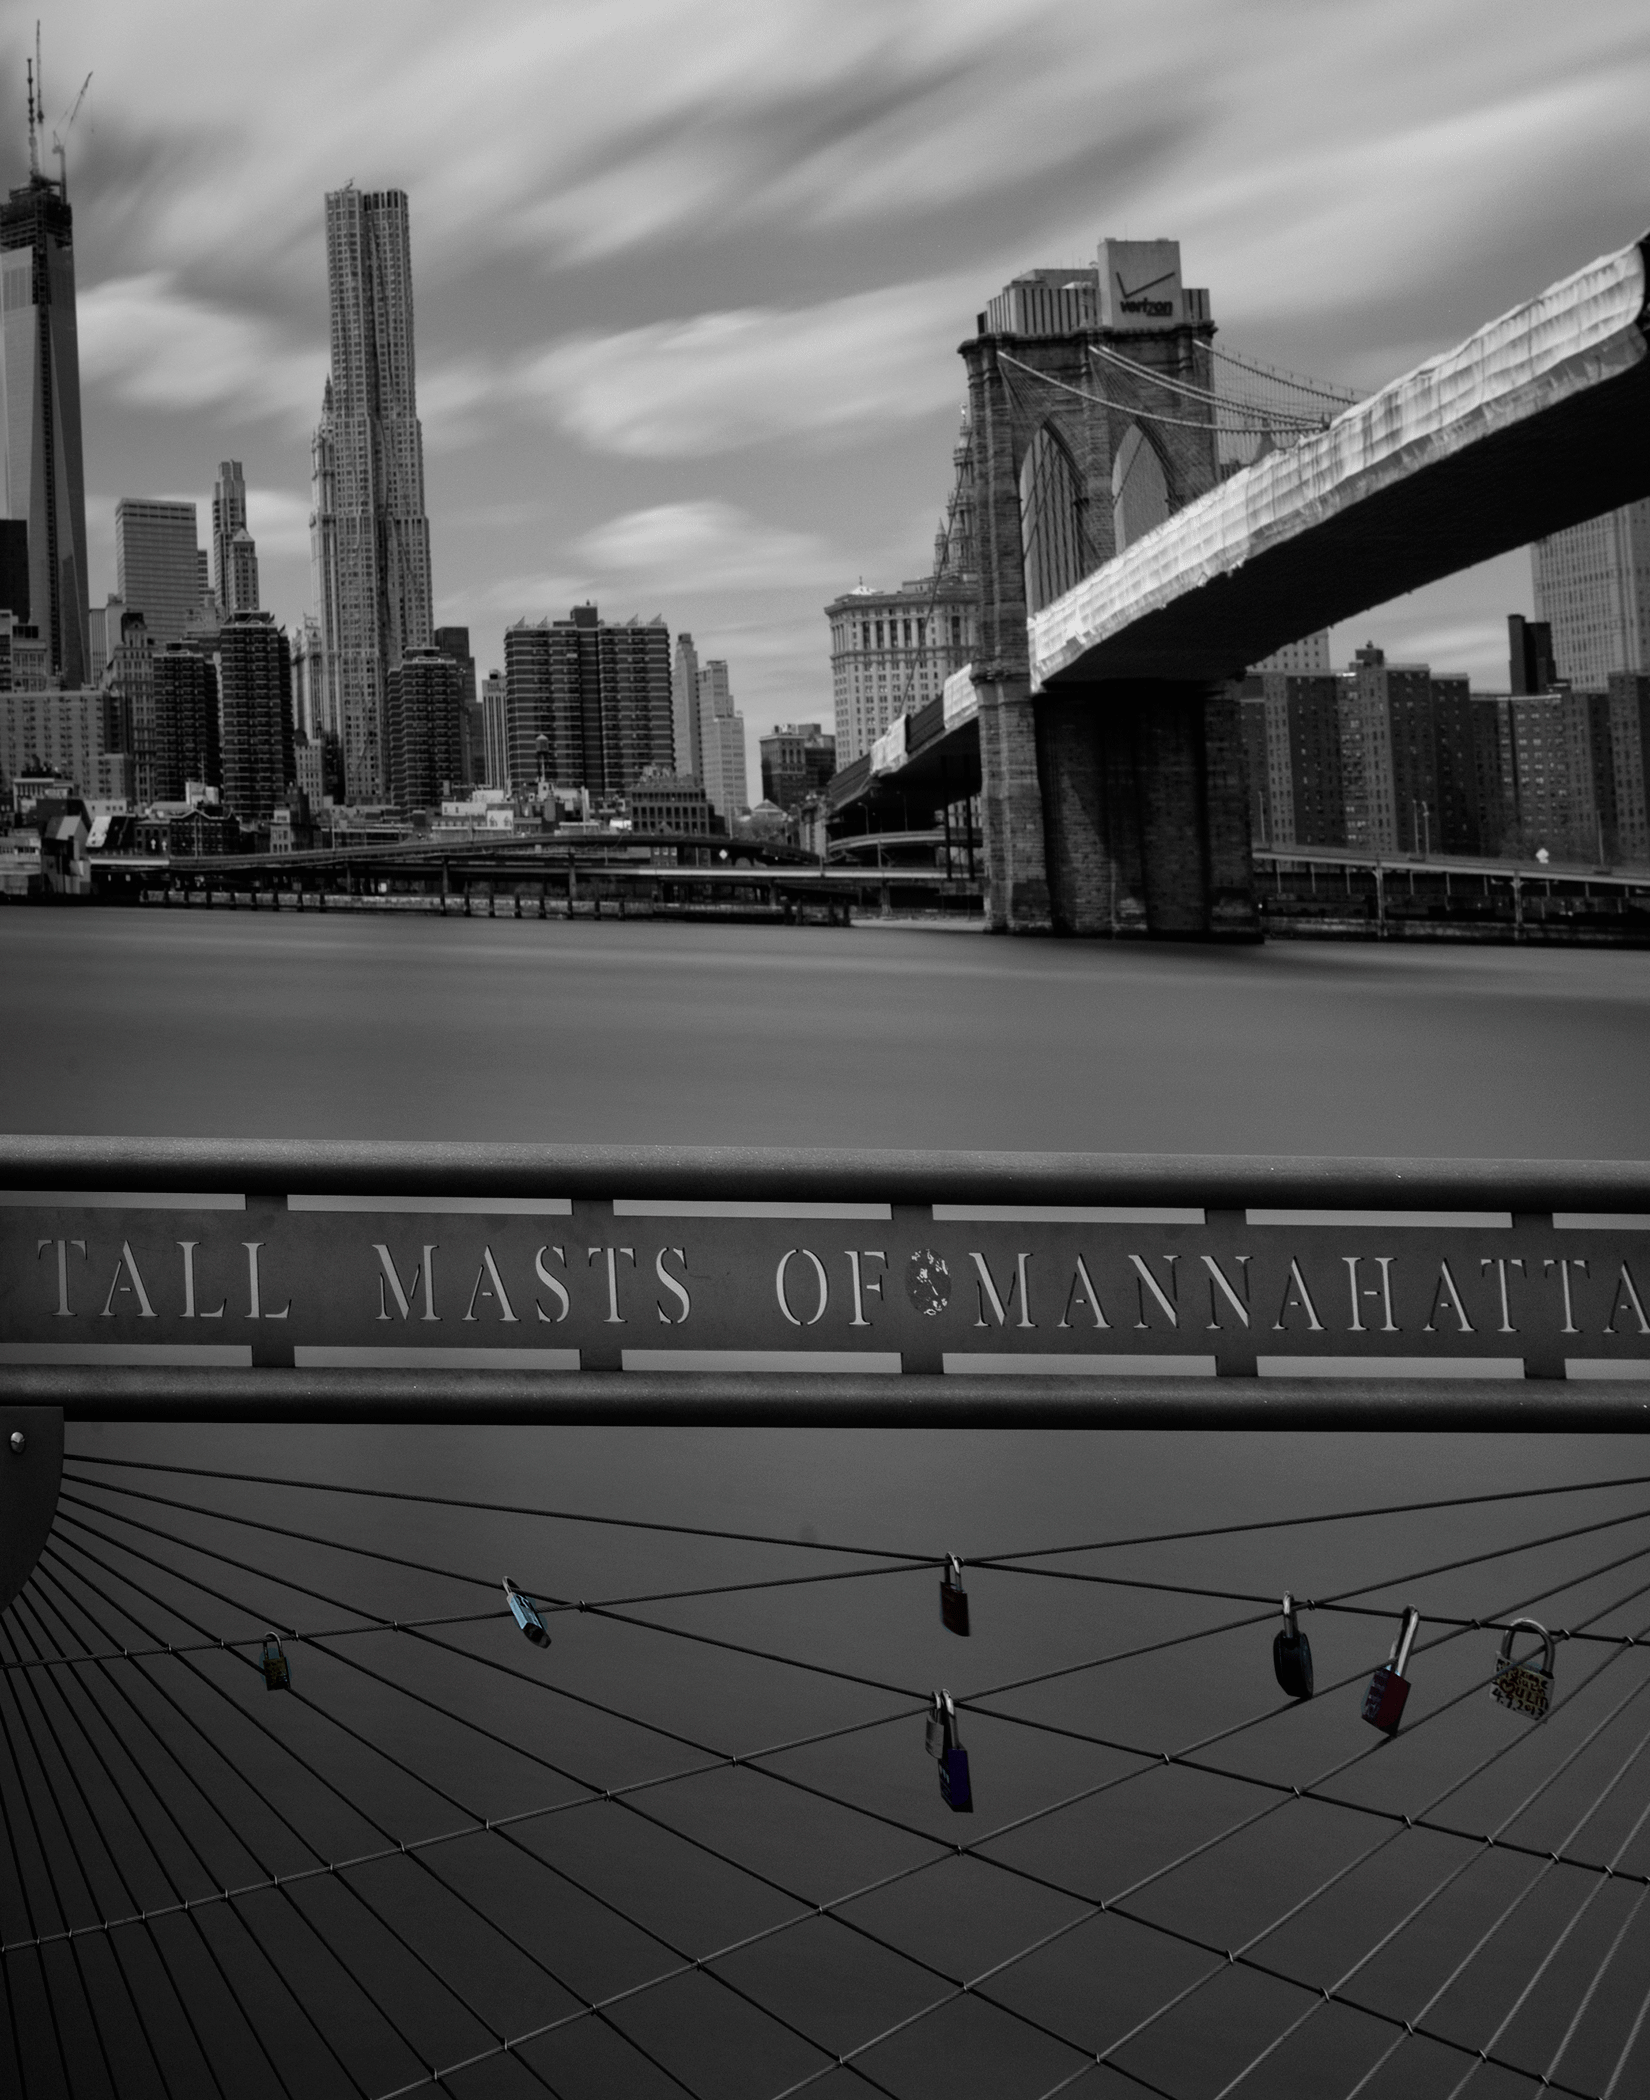 Tall Masts of Manhattan